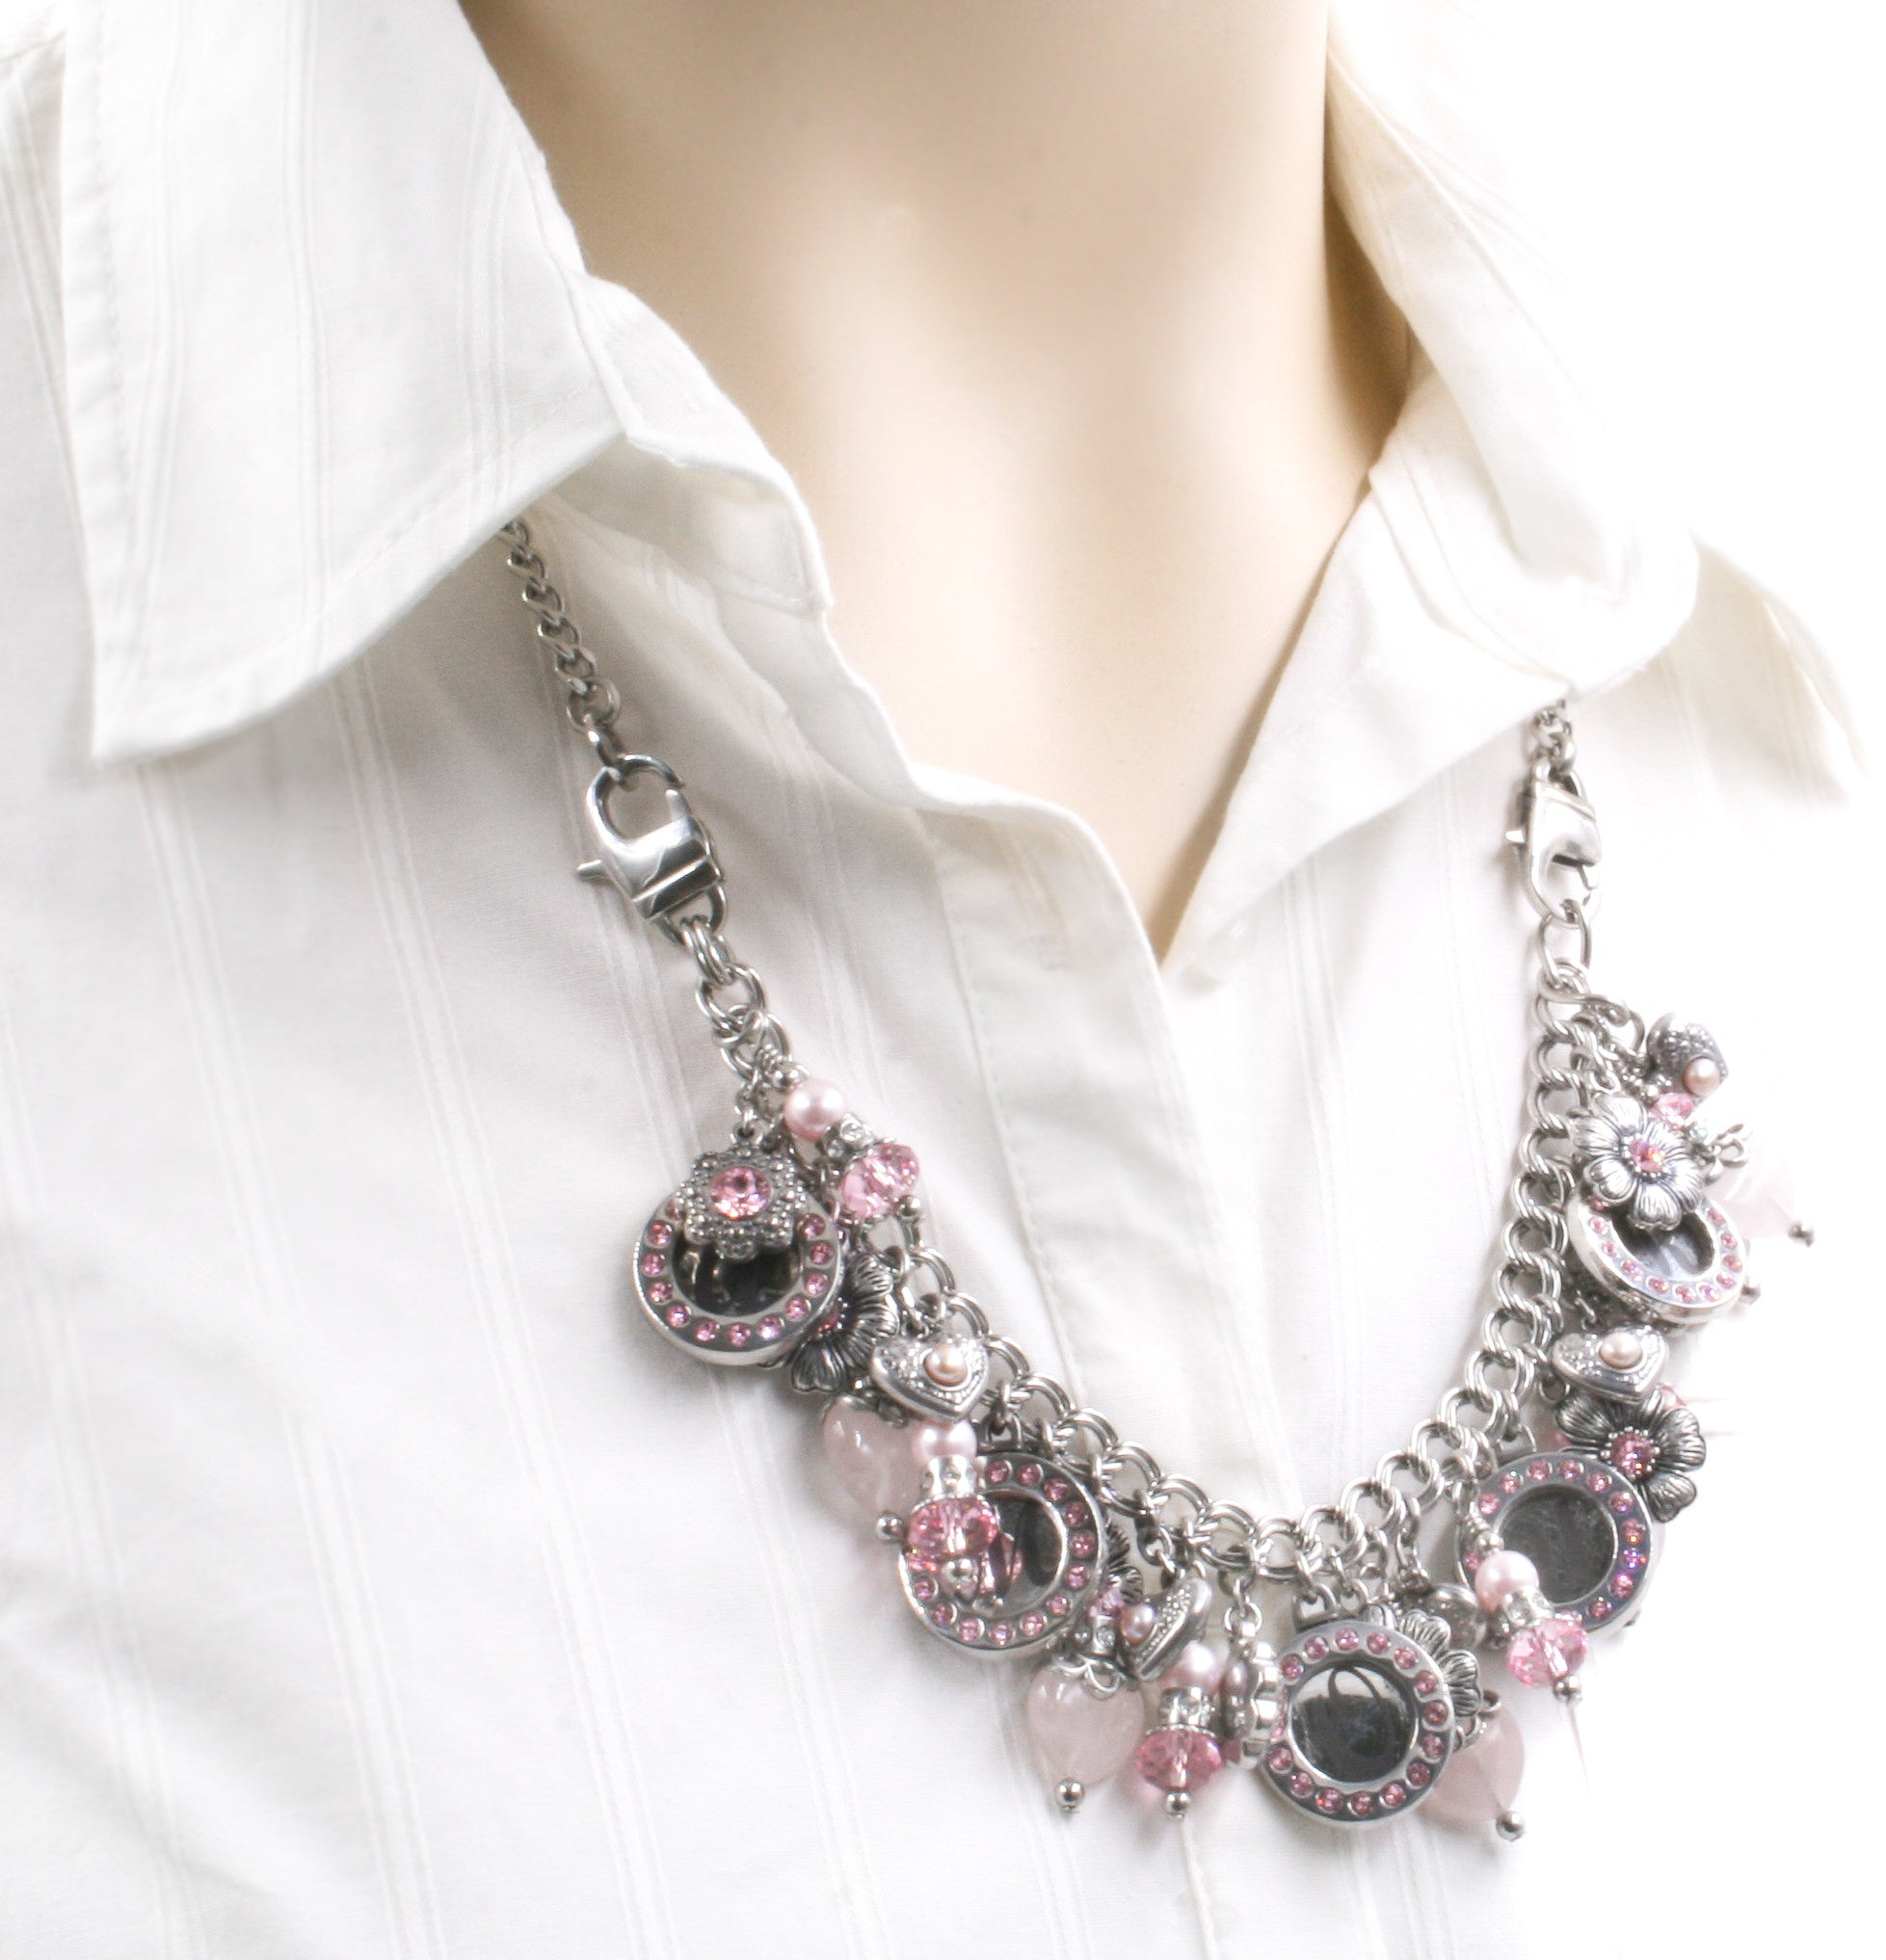 home baroque necklace img necklaces shop beads childrens children